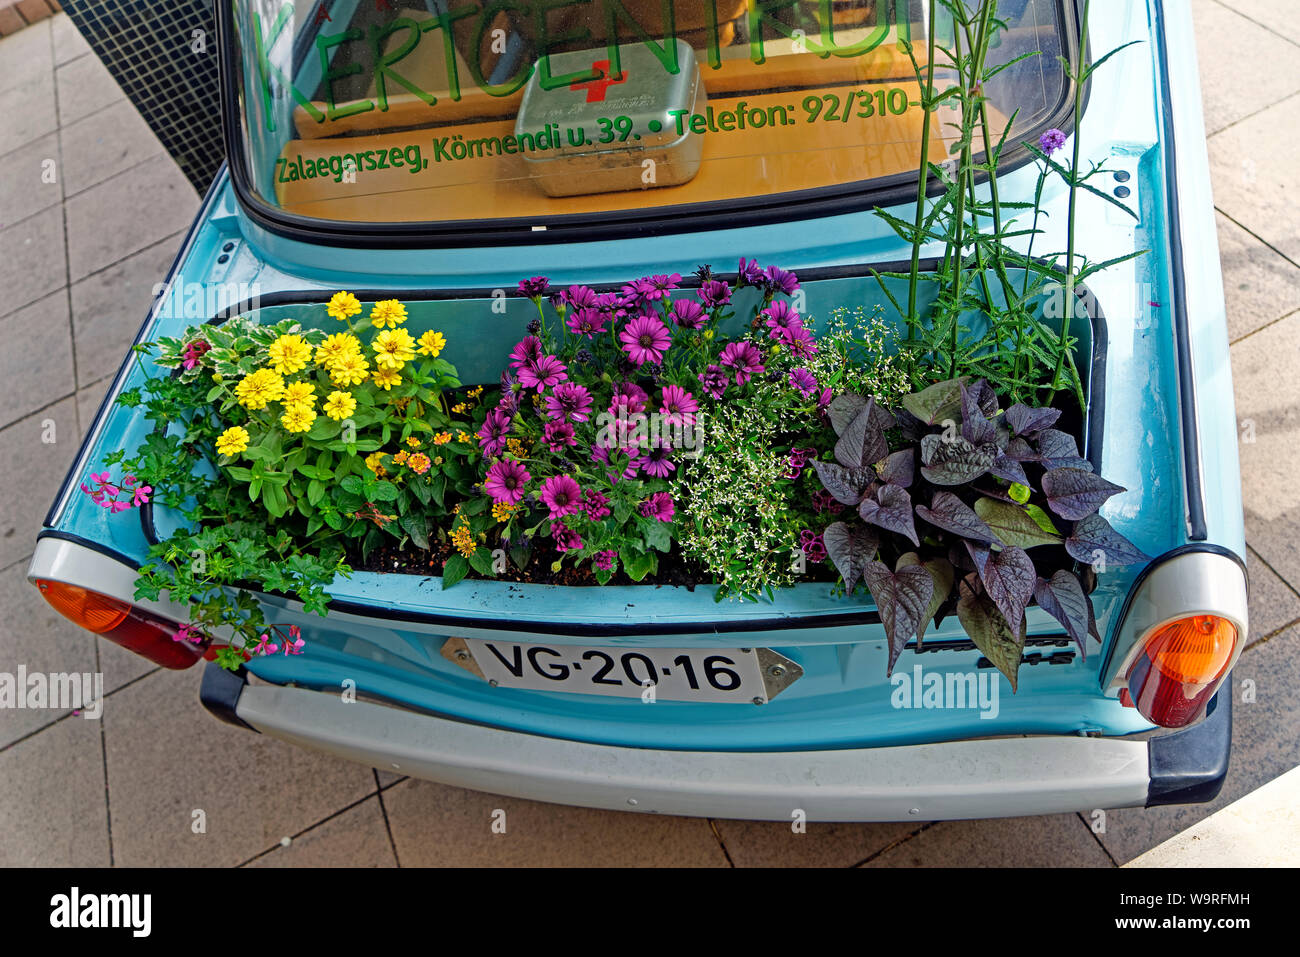 Blumenkasten High Resolution Stock Photography And Images Alamy